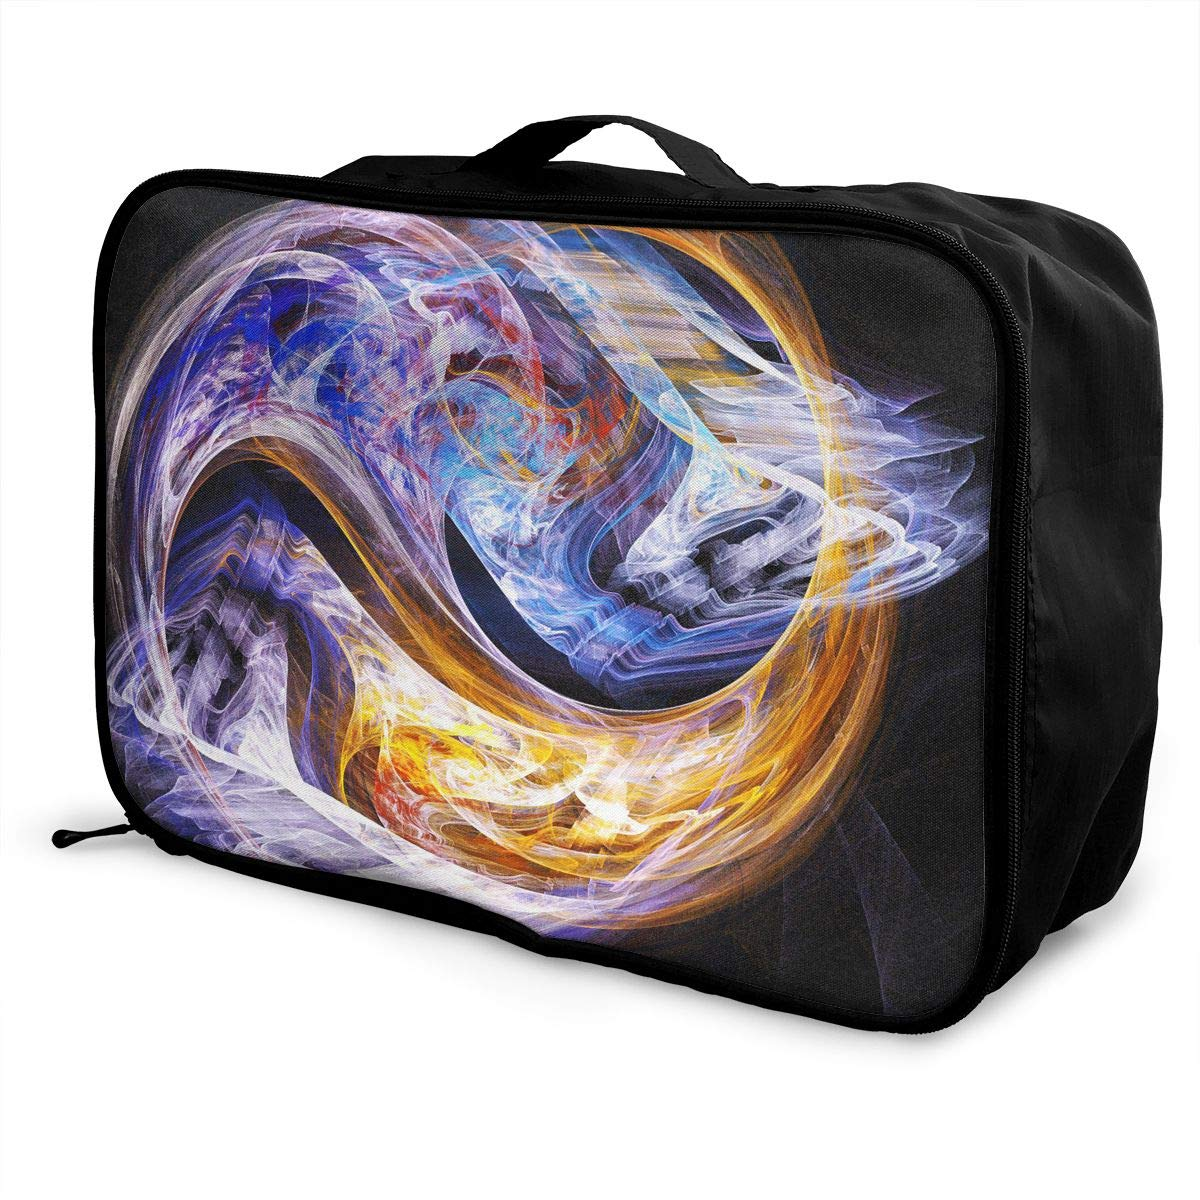 Heart Abstract Love Travel Lightweight Waterproof Foldable Storage Carry Luggage Large Capacity Portable Luggage Bag Duffel Bag